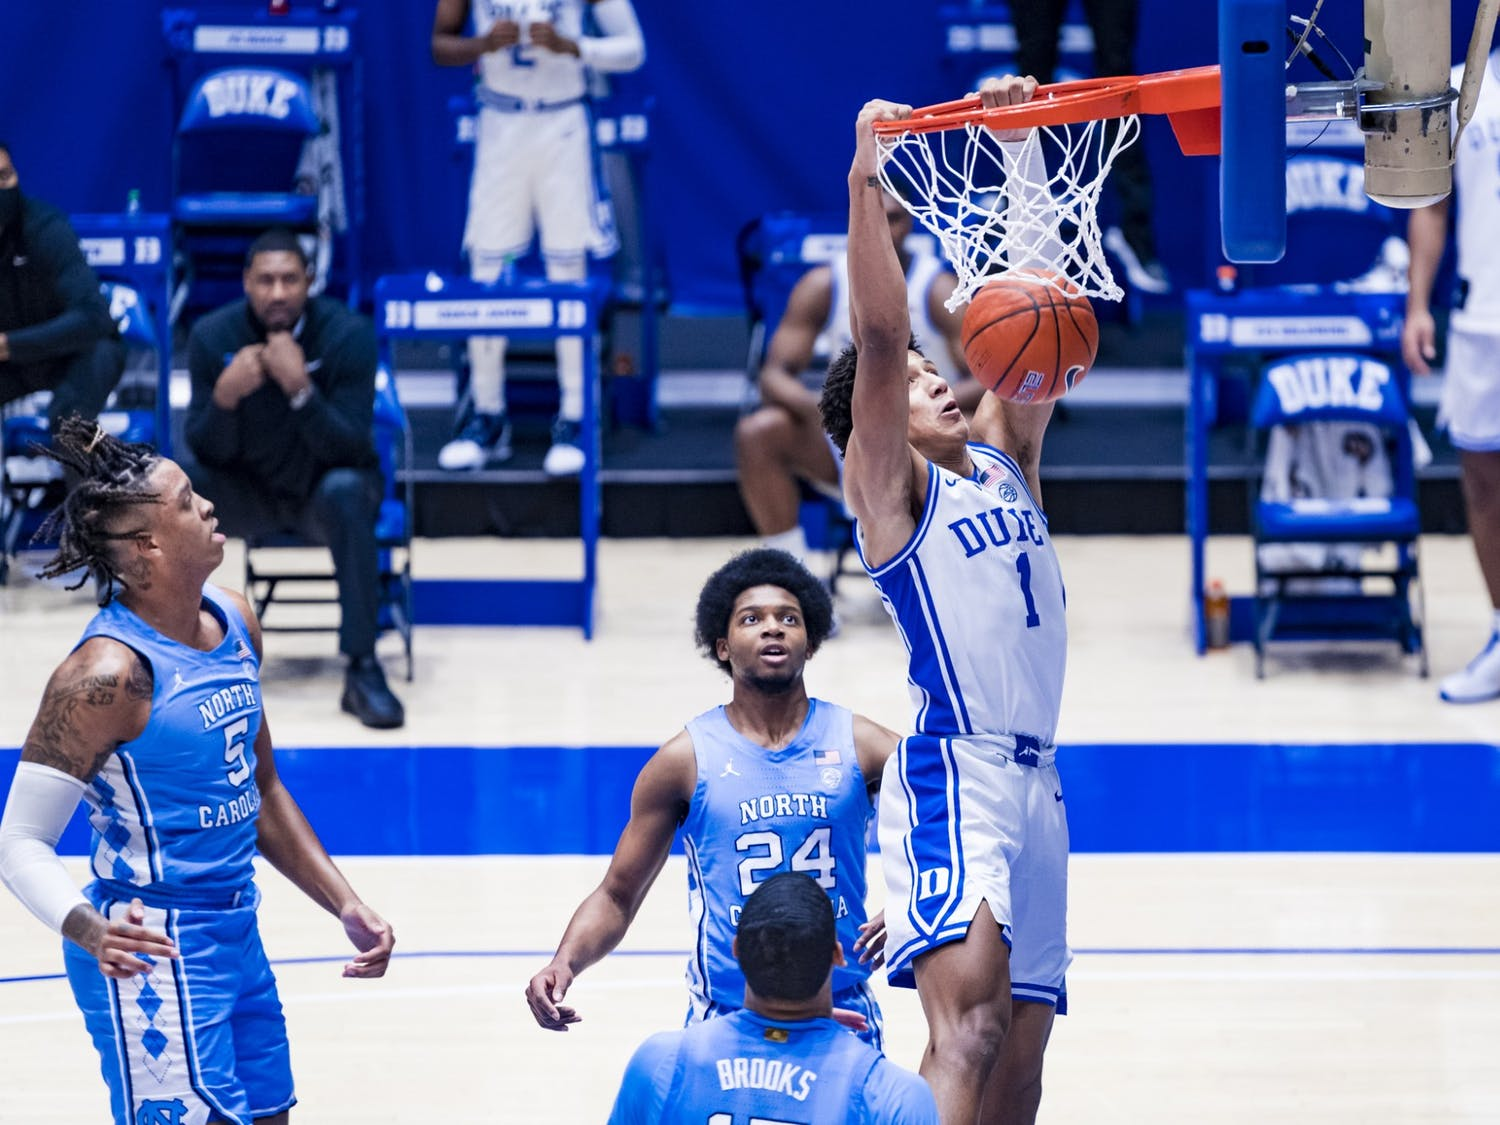 Freshman Jalen Johnson has been one of Duke's most exciting players all year, but he's also had his fair share of subpar performances.